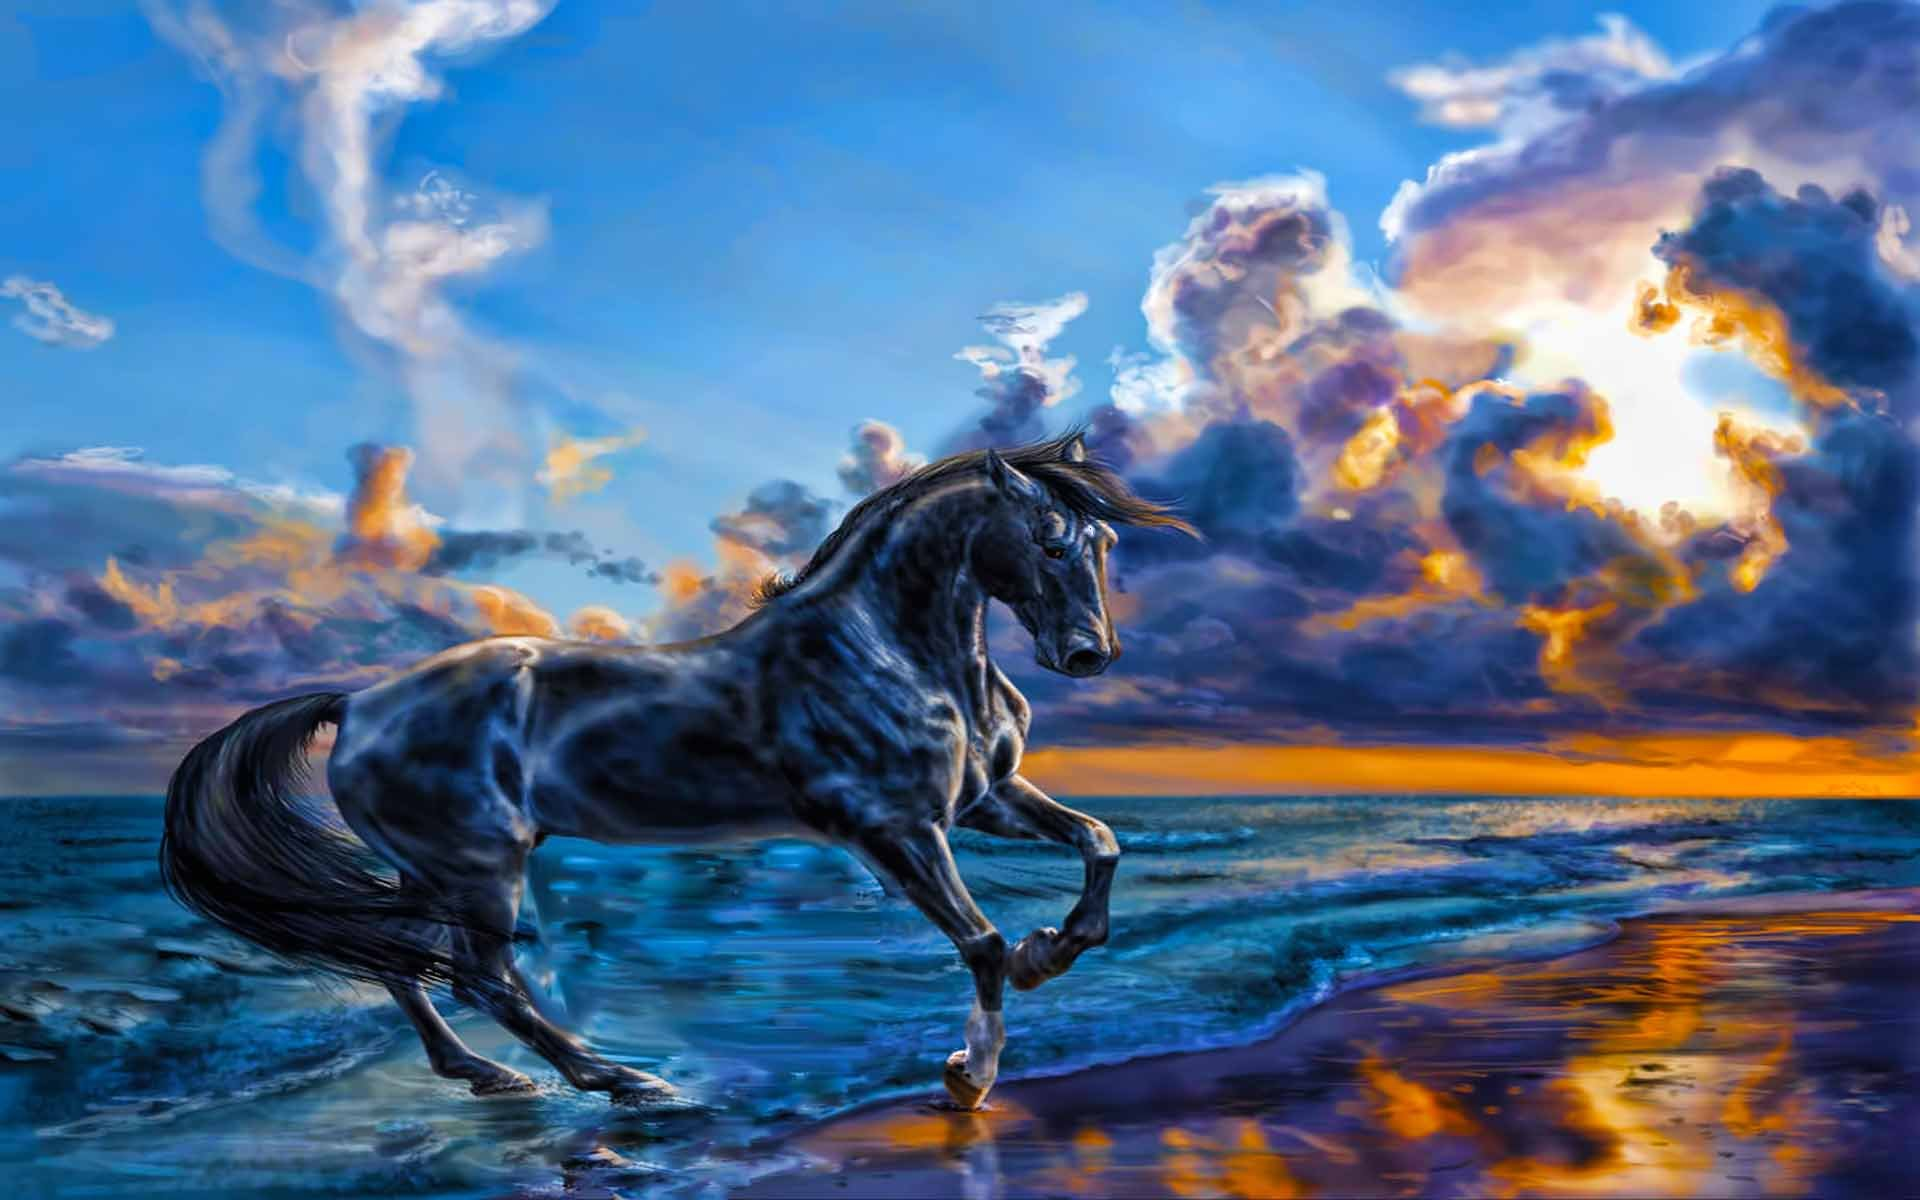 wallpaper.wiki-horse-nature-sea-sky-wallpapers-beauty-beach-mighty